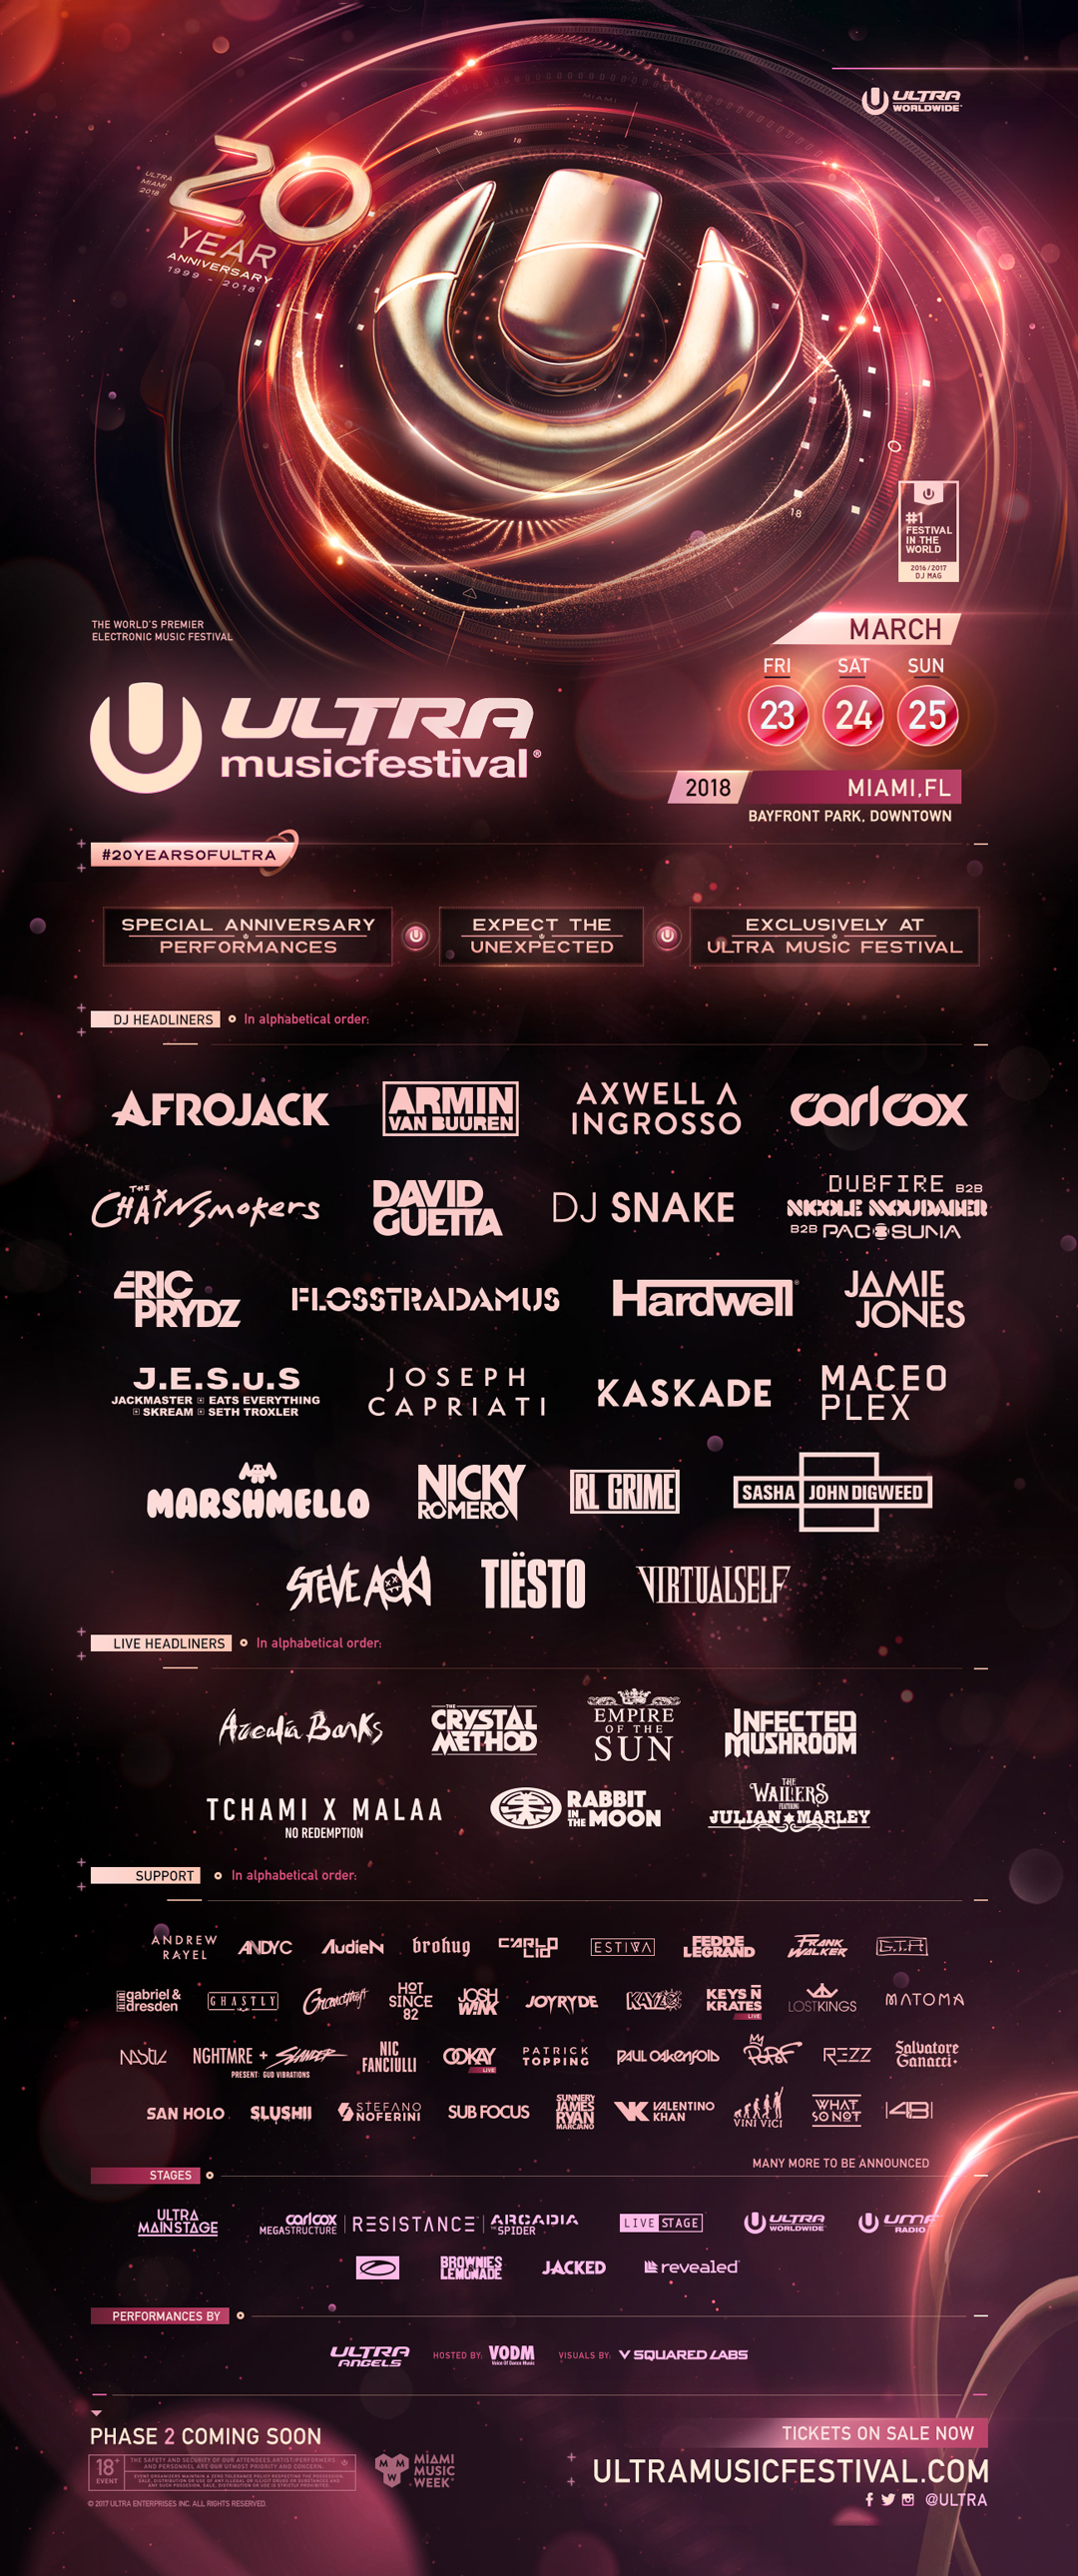 ultra-miami-lineup-phase1-2018-backstages